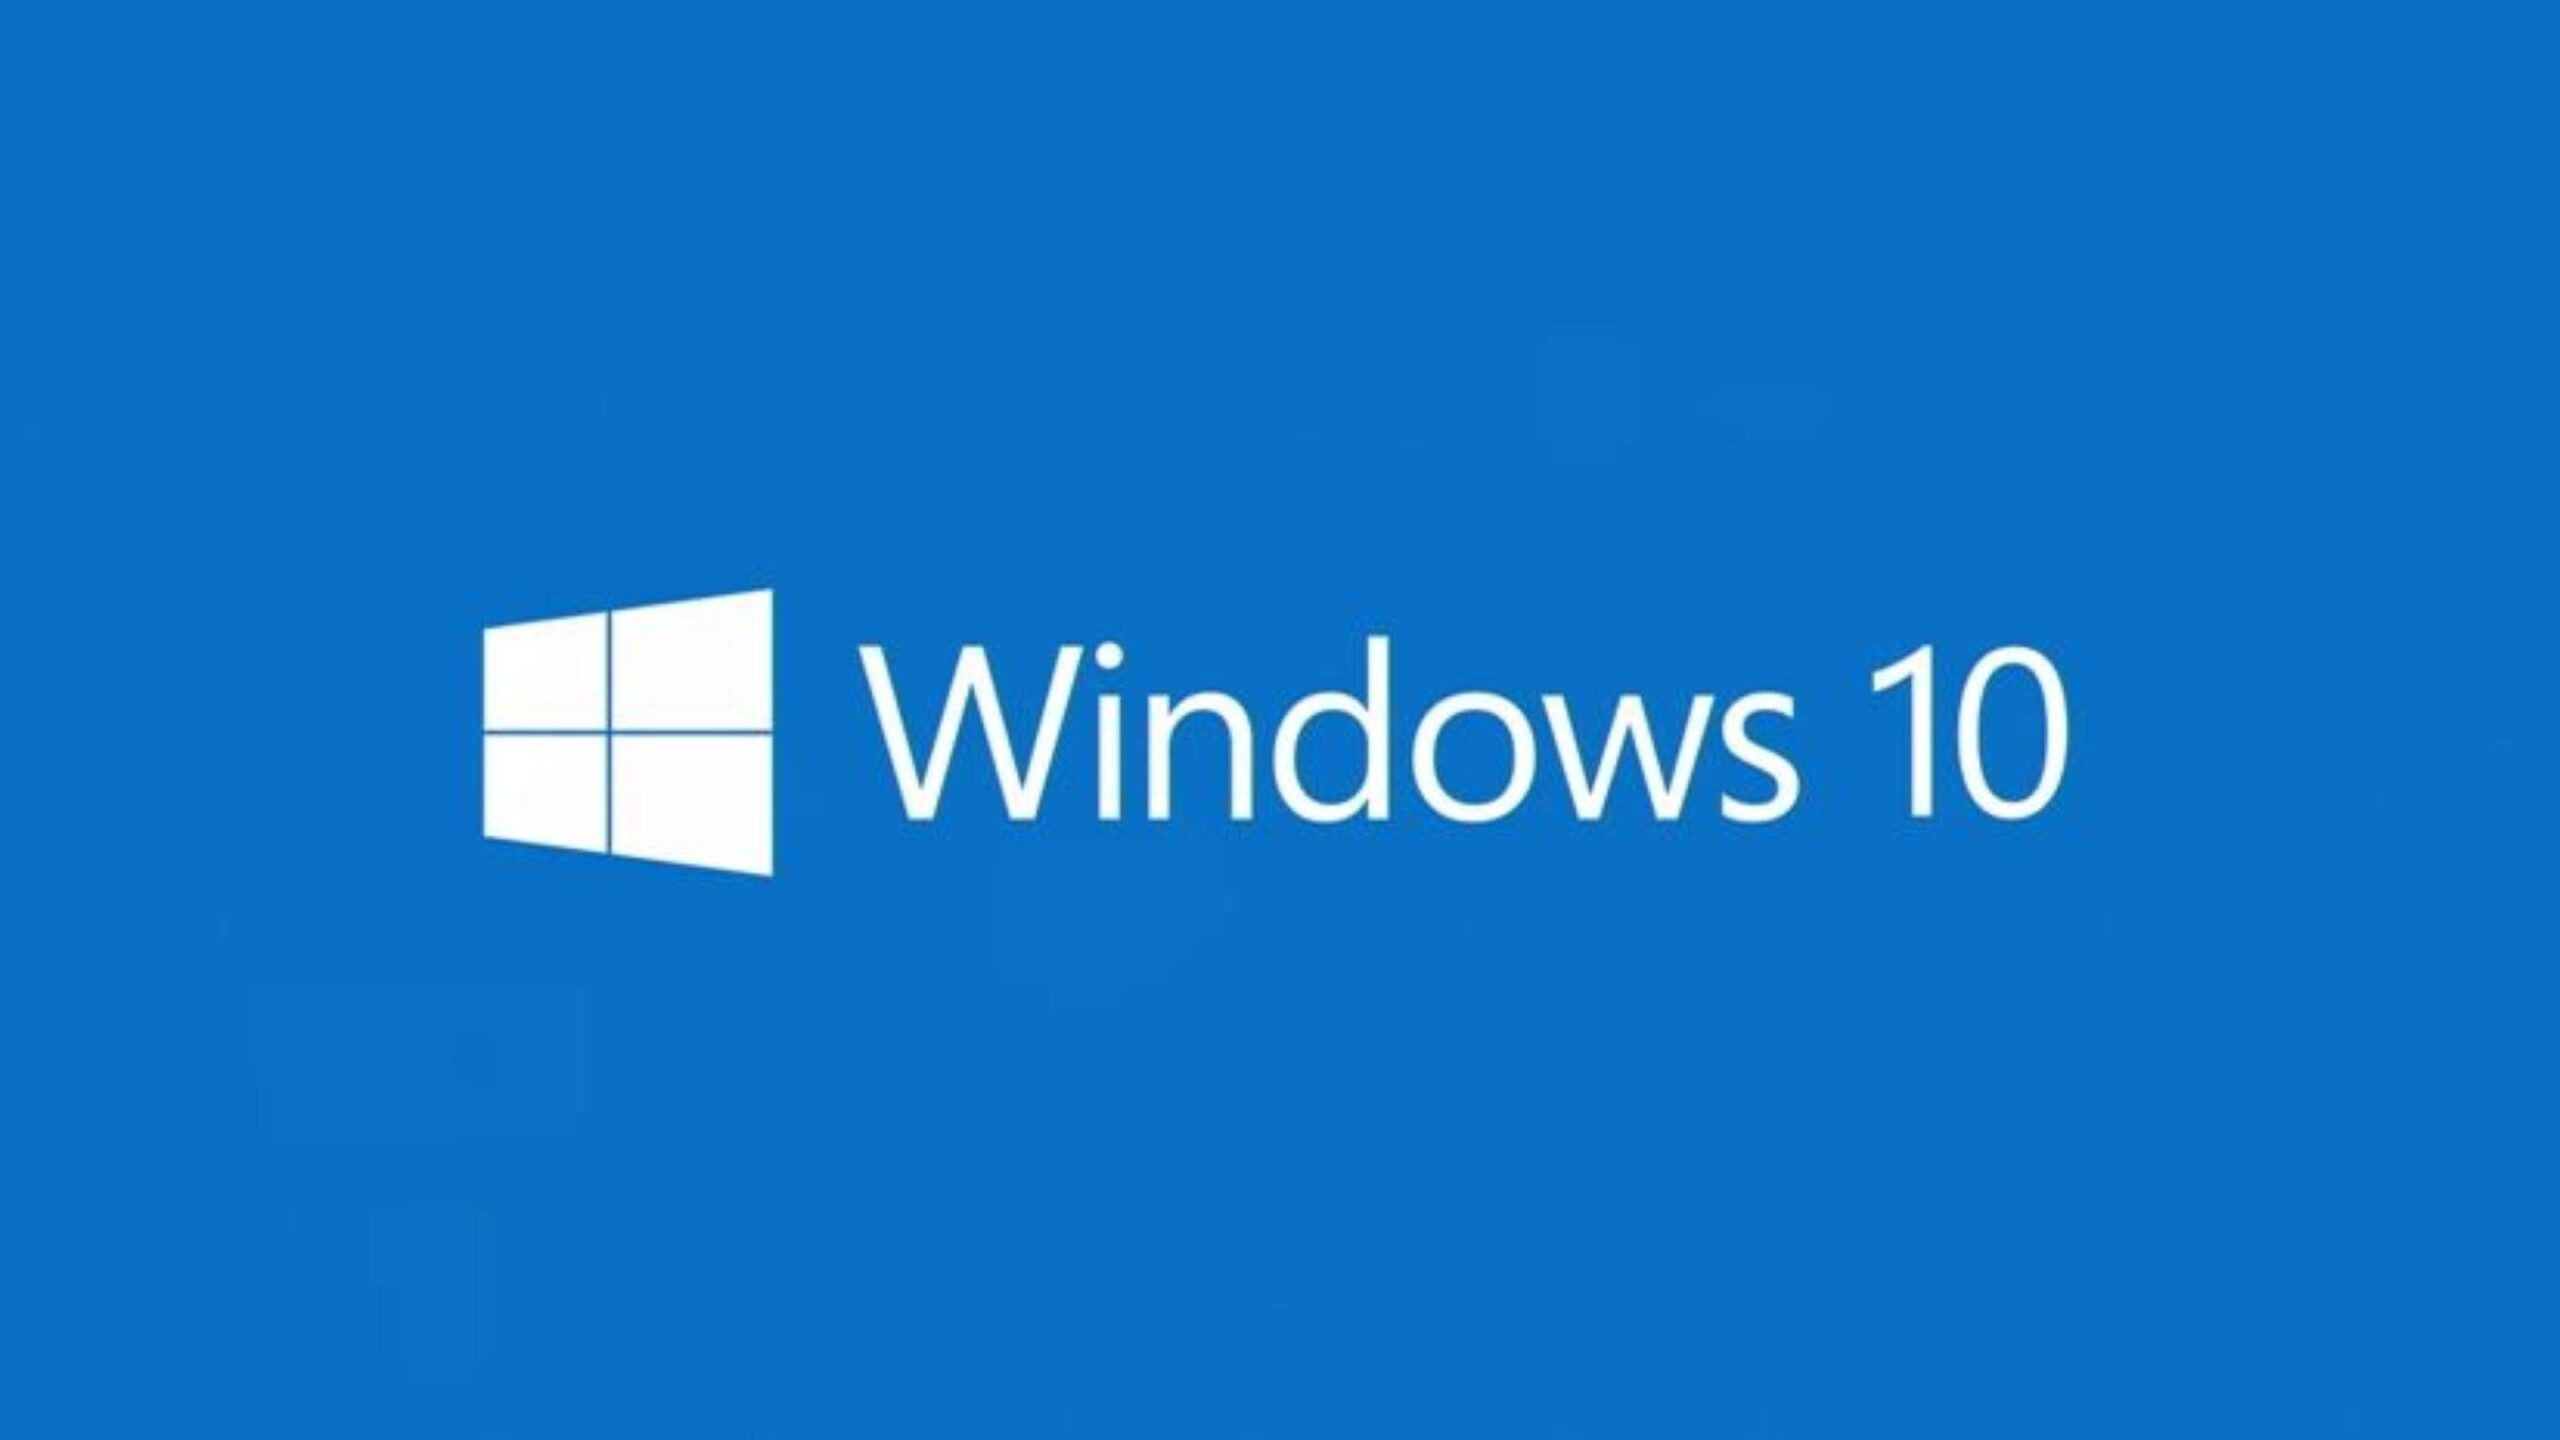 How to start Windows 10 in safe mode and what is it for?